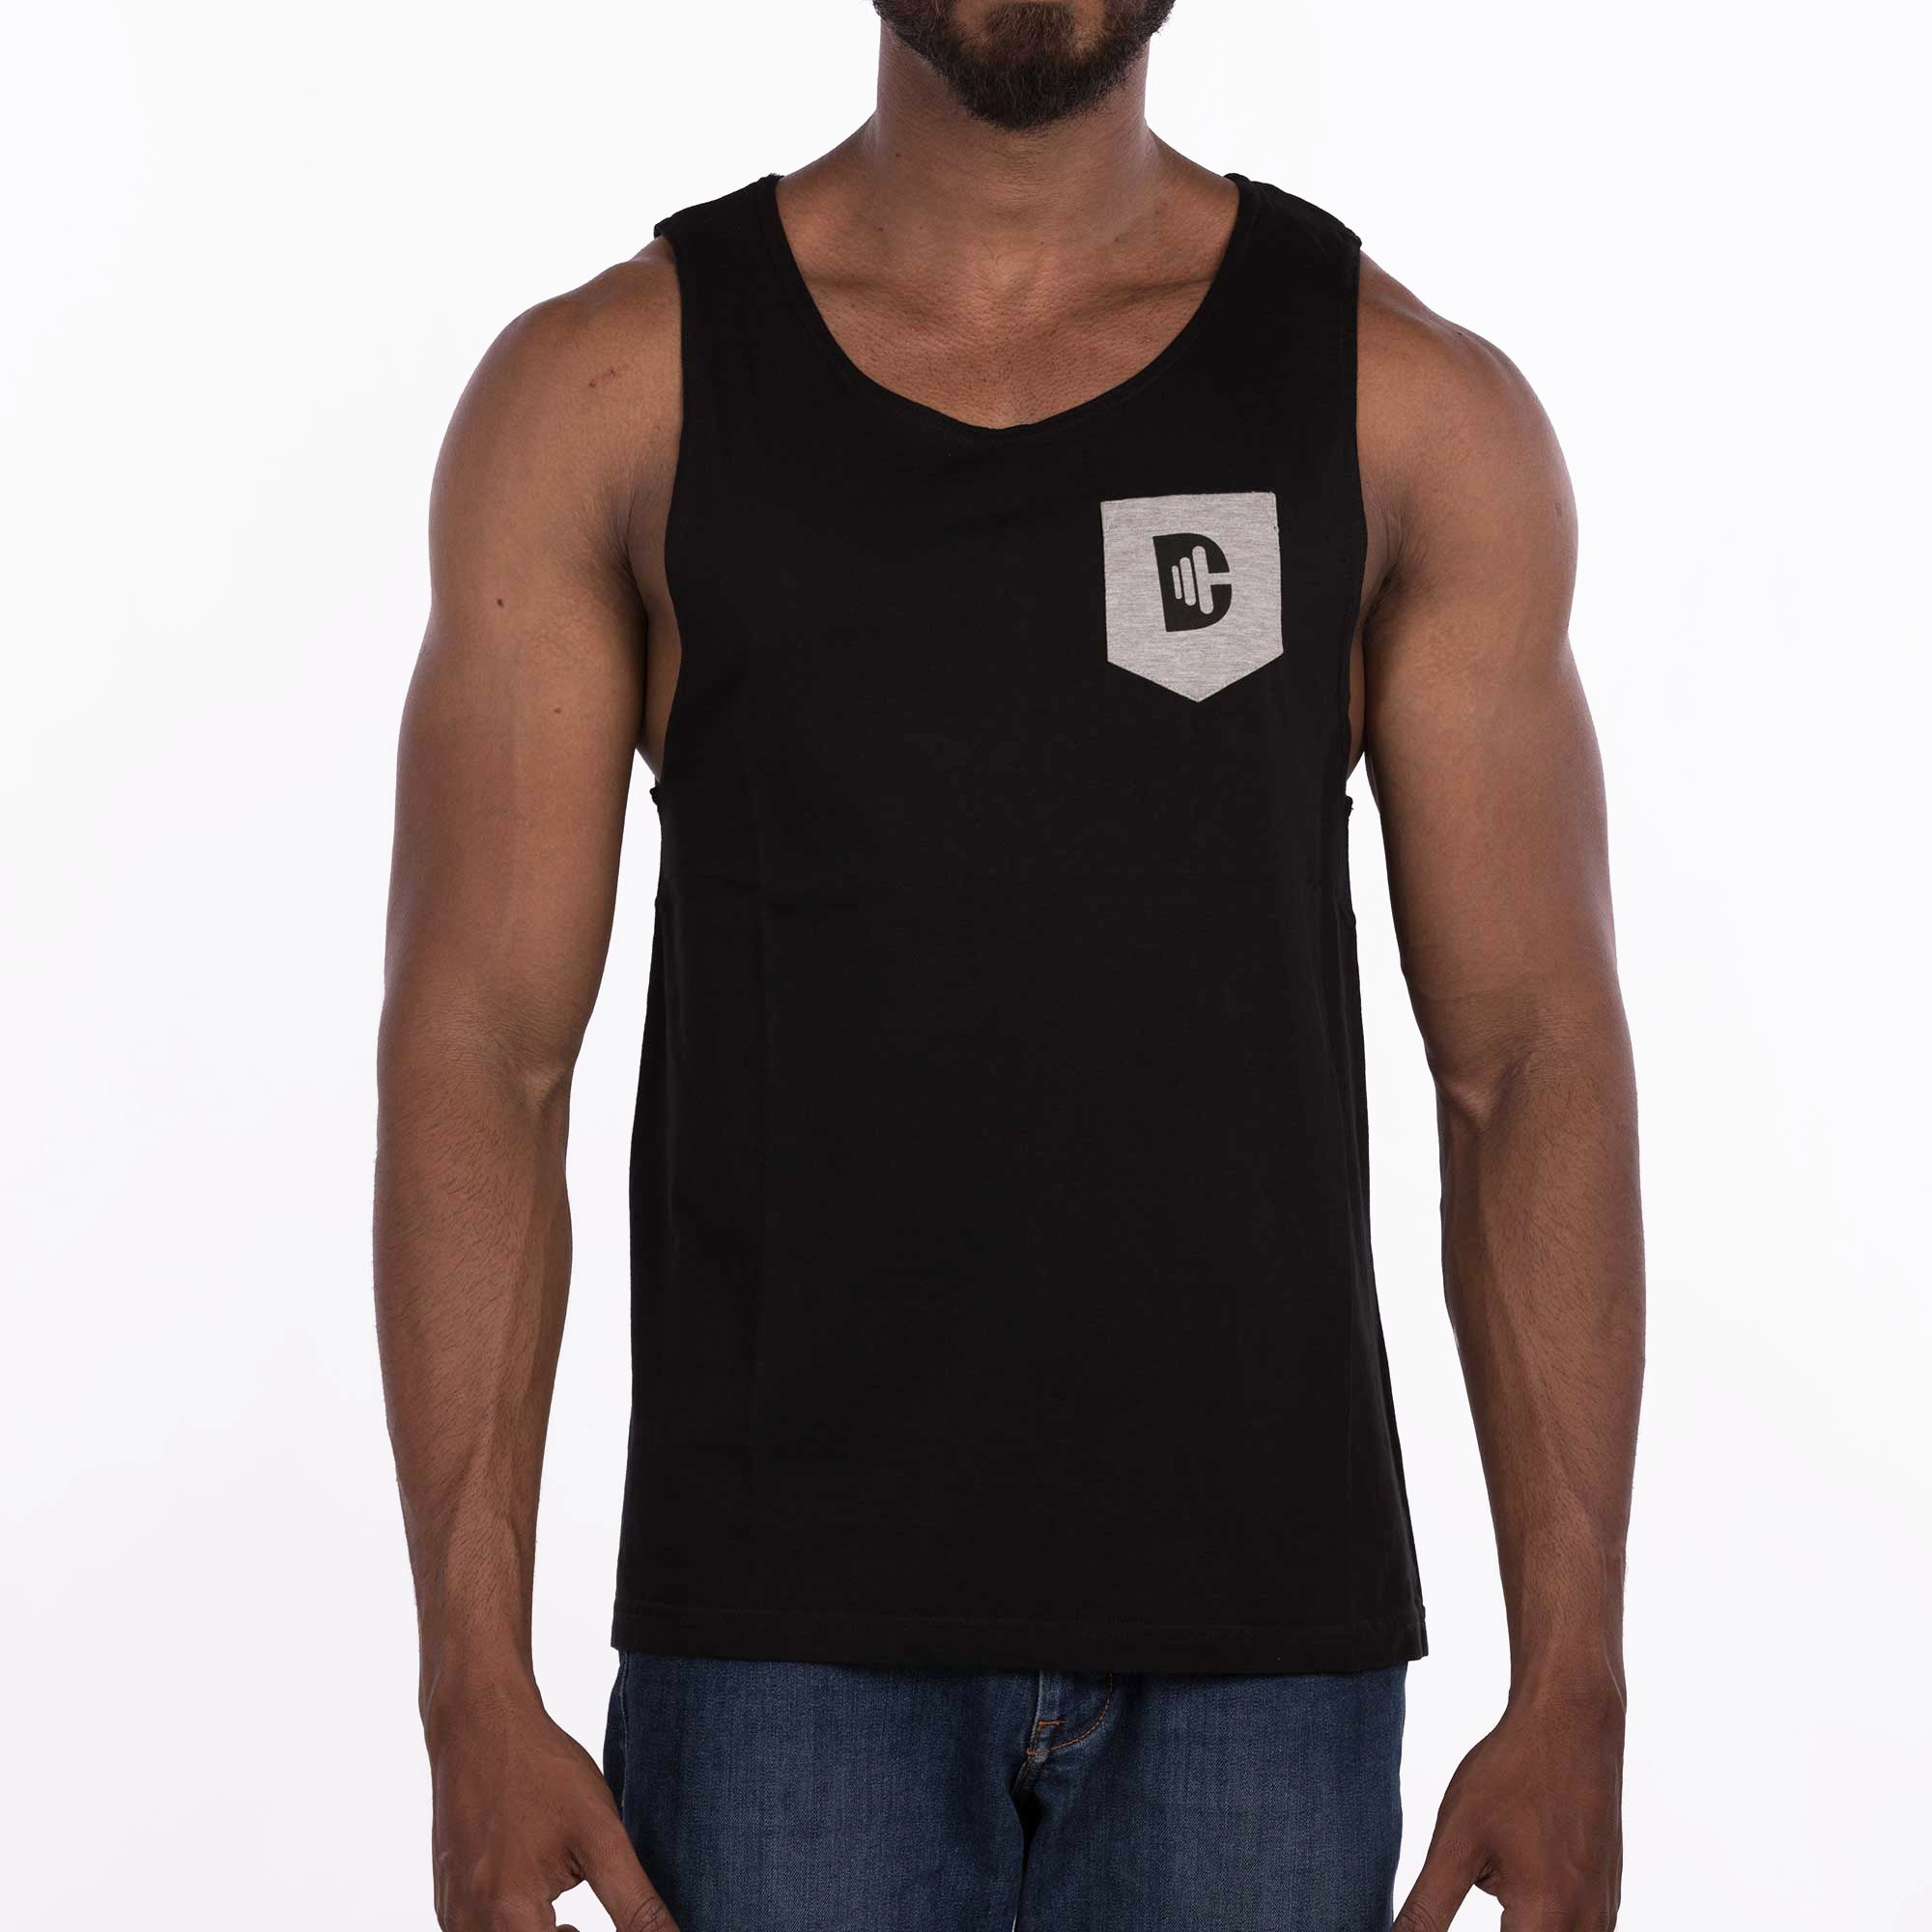 DB101 Pocket Vest - Black